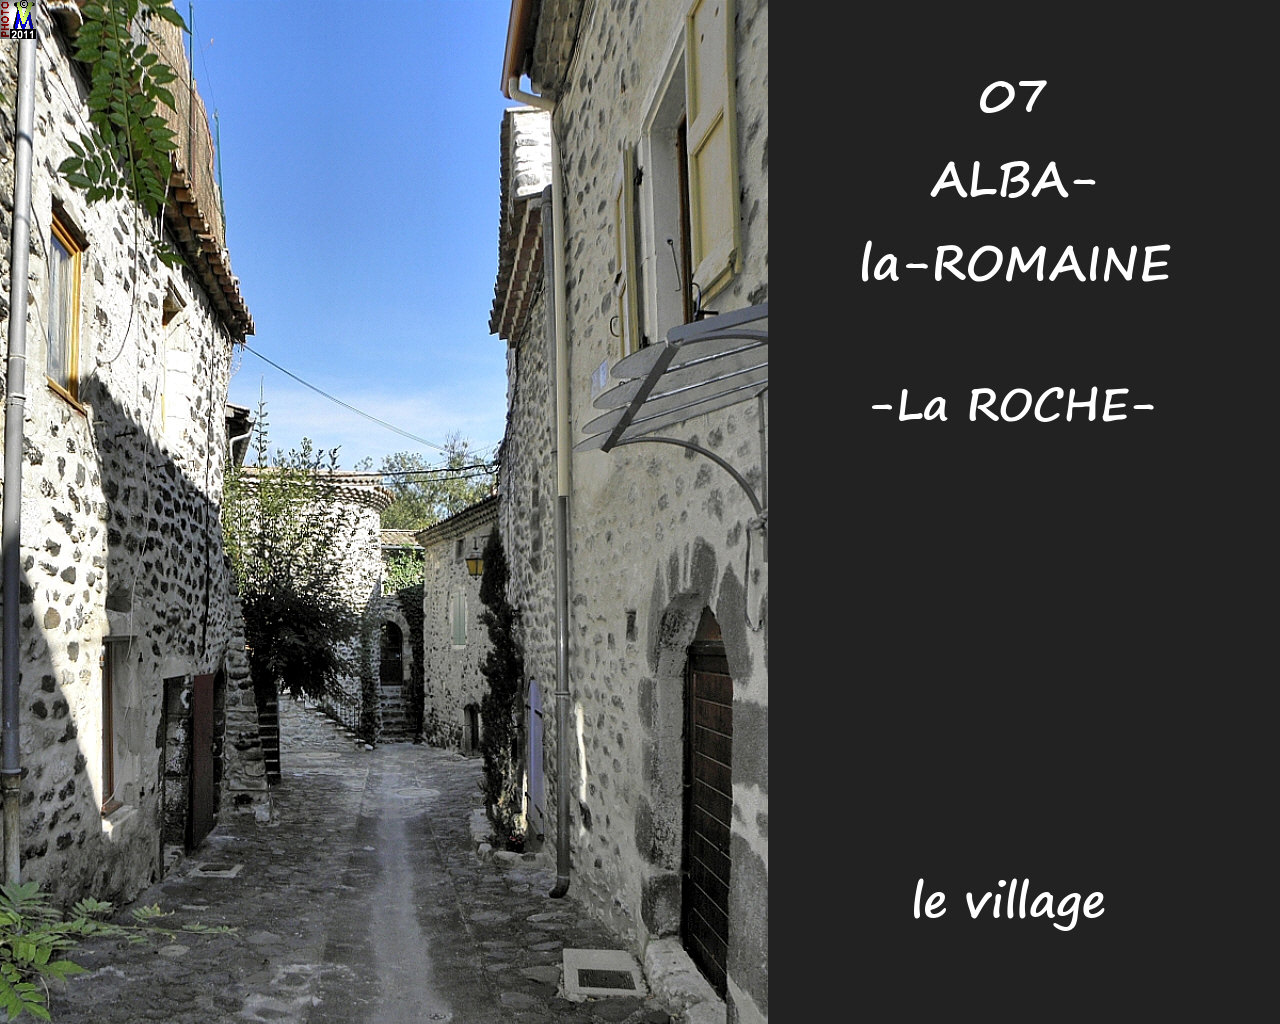 07ALBA-ROMAINEzROCHE_village_102.jpg